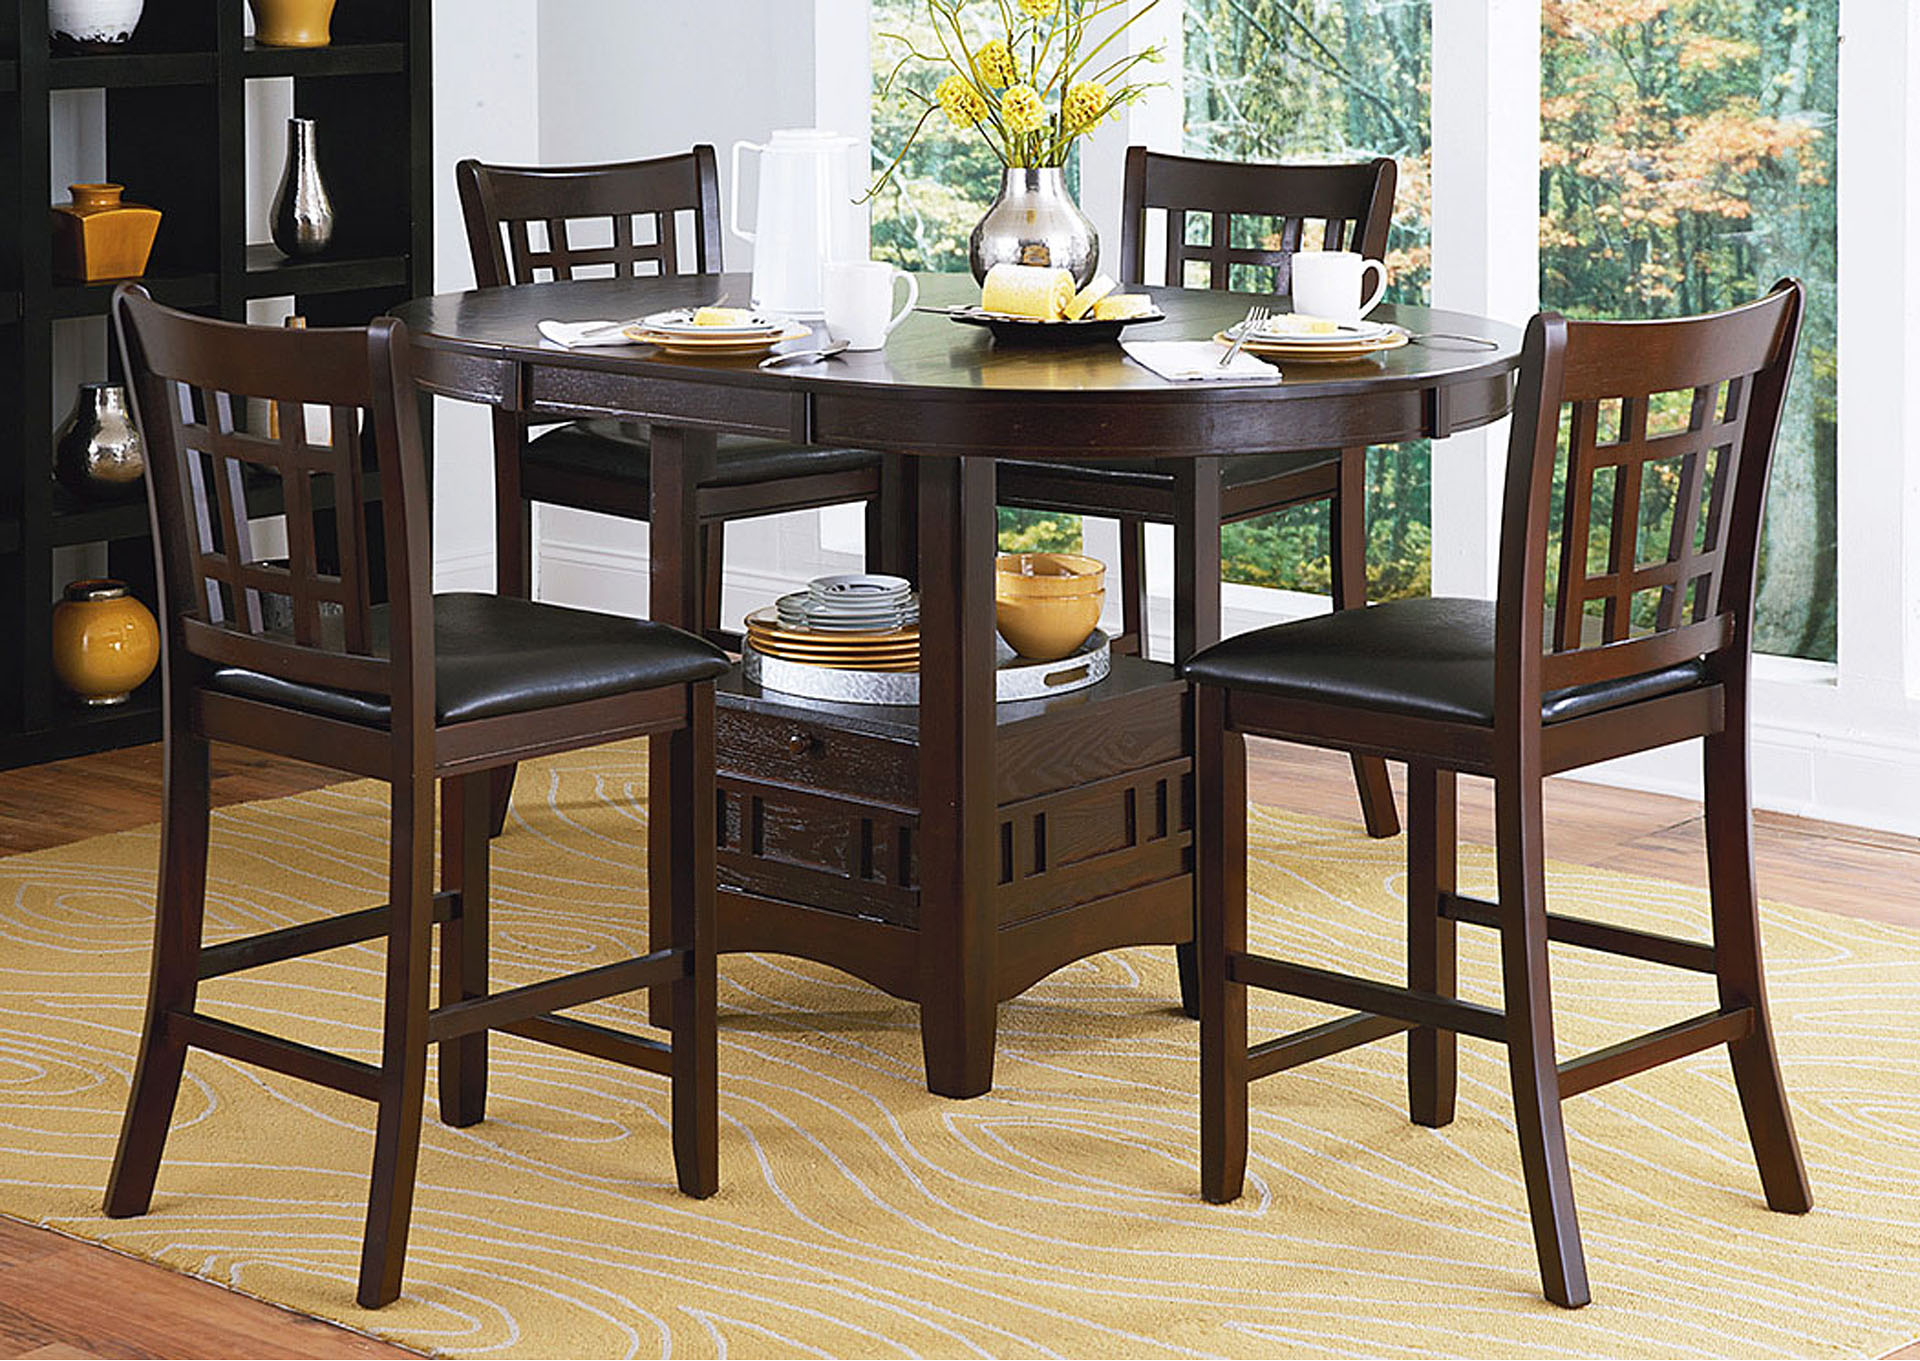 Apex Furniture Junipero Counter Height Dining Table W 4 Counter Height Chairs